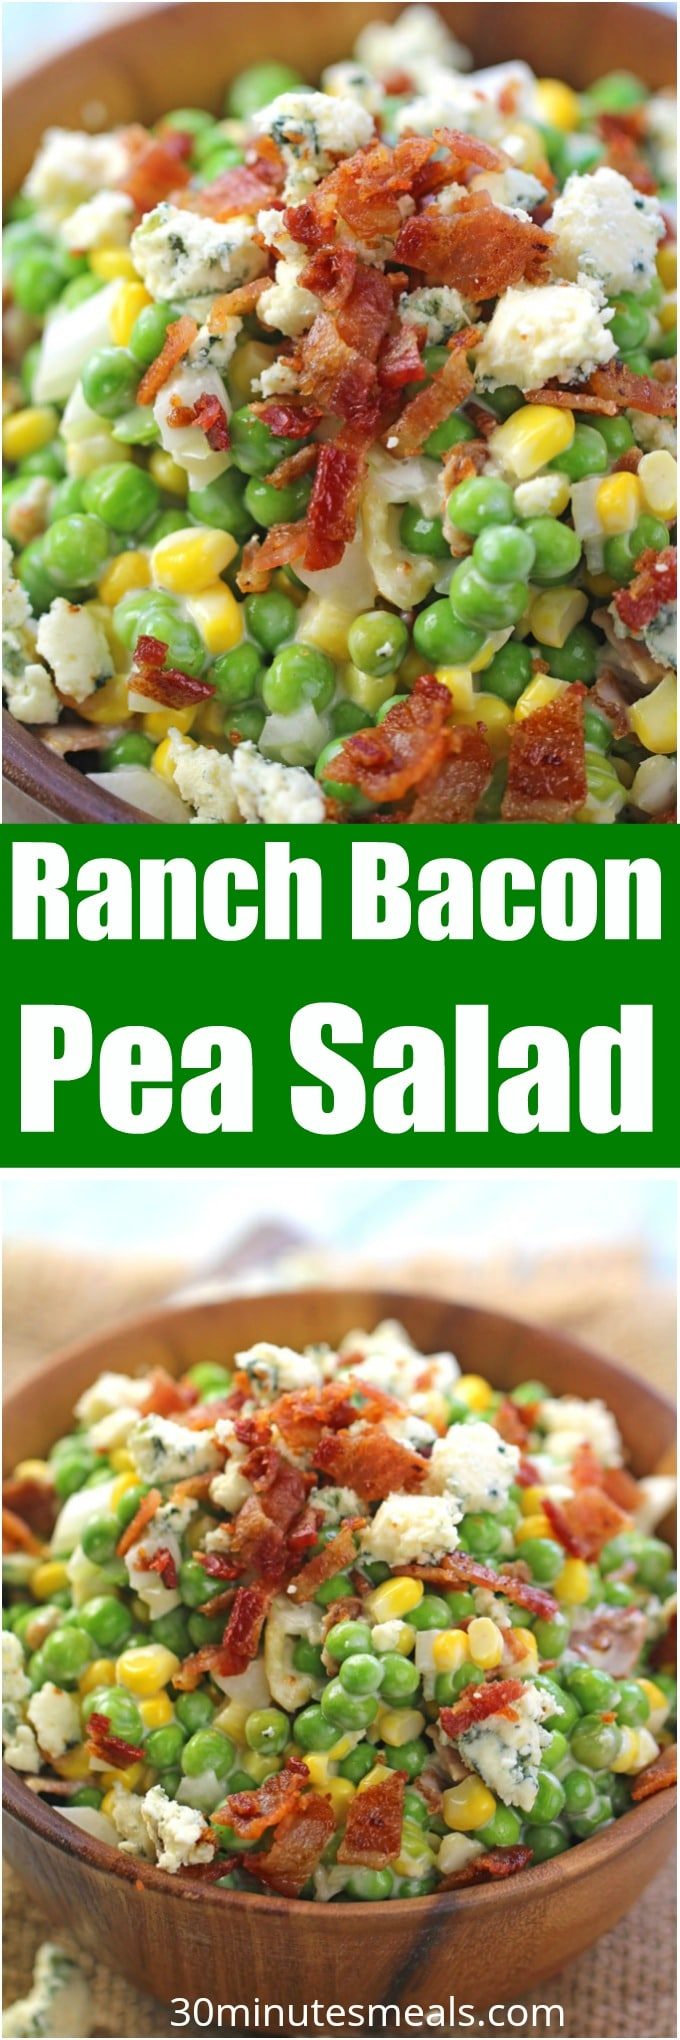 Ranch Bacon Pea Salad is the perfect summer salad. Made with creamy ranch, lots of blue cheese and delicious, crispy bacon.